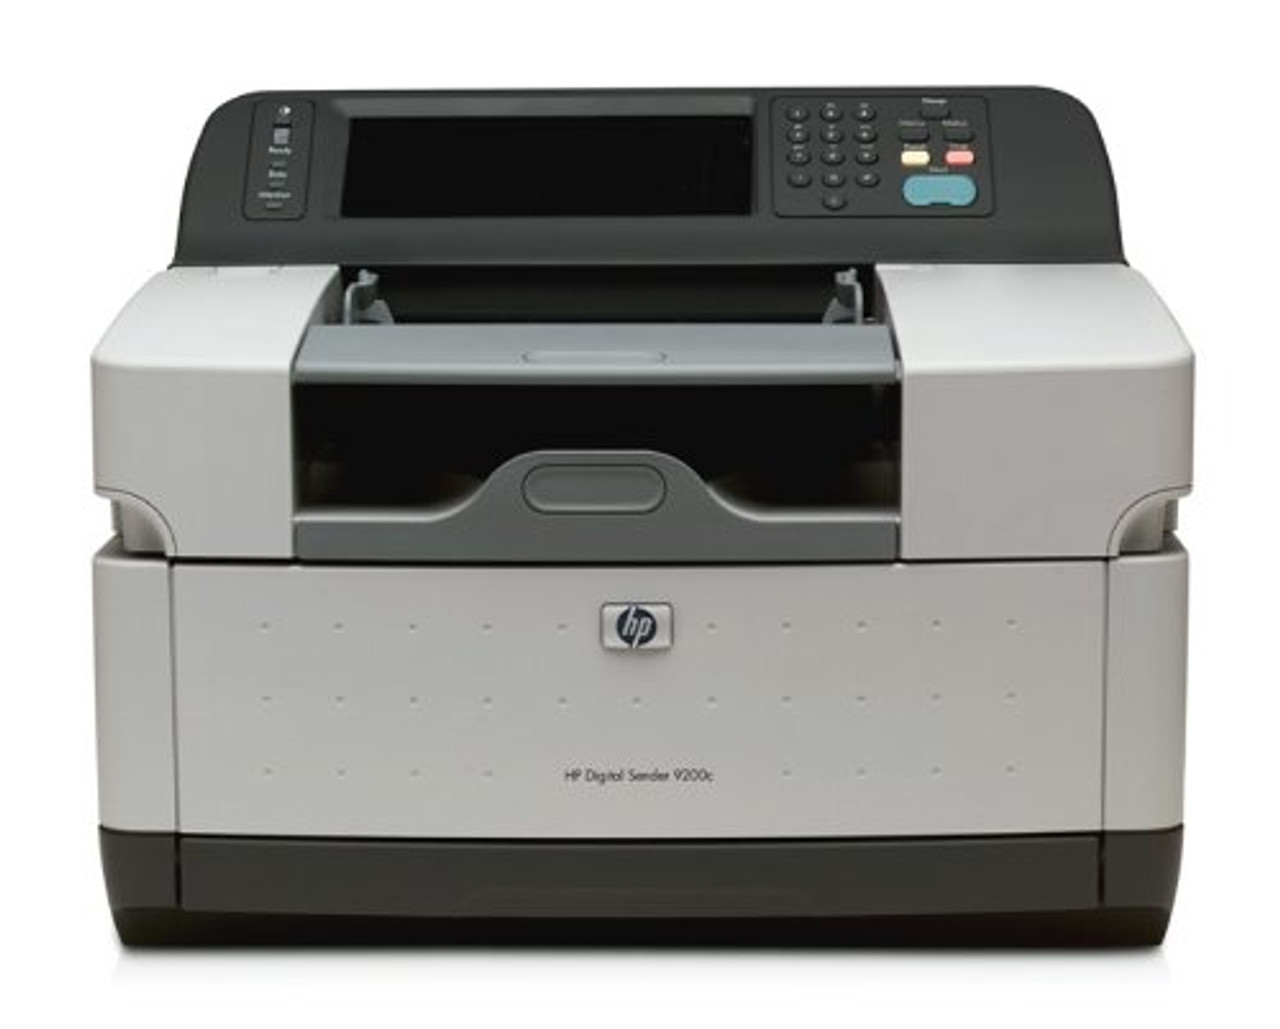 HP Digital Sender 9200c Q5916AR Document scanner